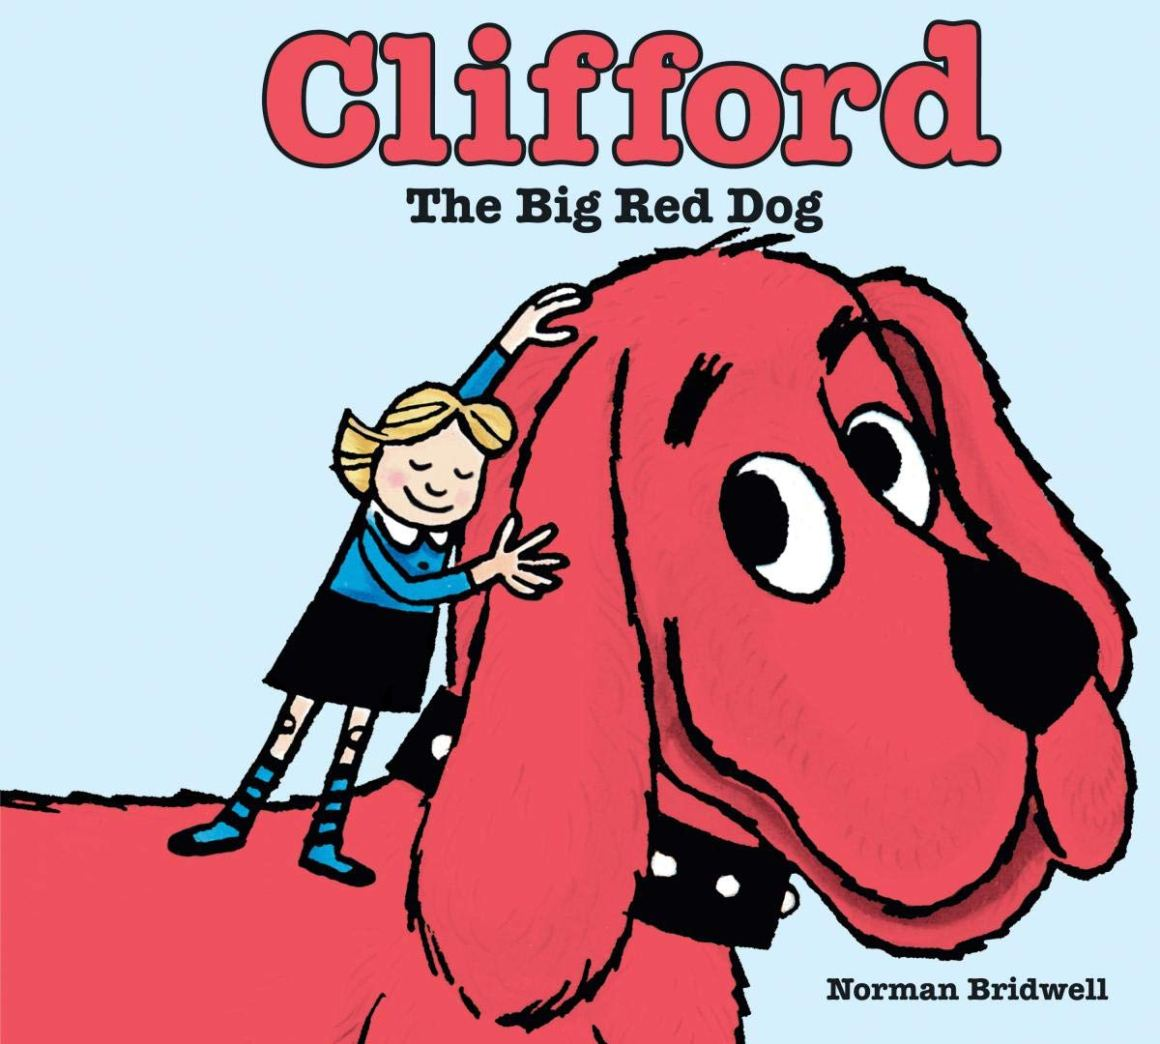 Clifford the Big Red Dog is one of the best audiobooks for 5-year olds.